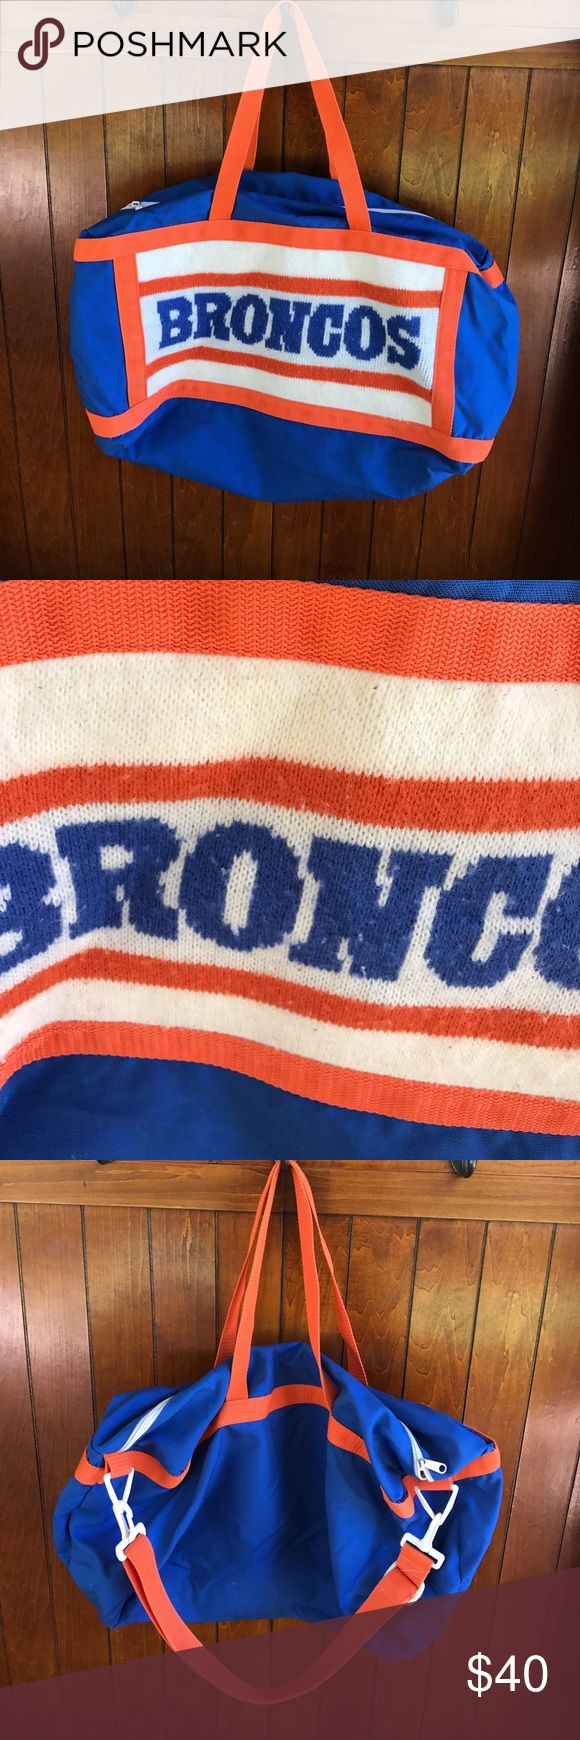 Vintage Denver Broncos duffle bag Super cool bag!  The knit Broncos has some piling.  A few marks on the outside.  The inside has some discoloration.  I think it is the canvas aging over time.  This is a score! Vintage Bags Travel Bags